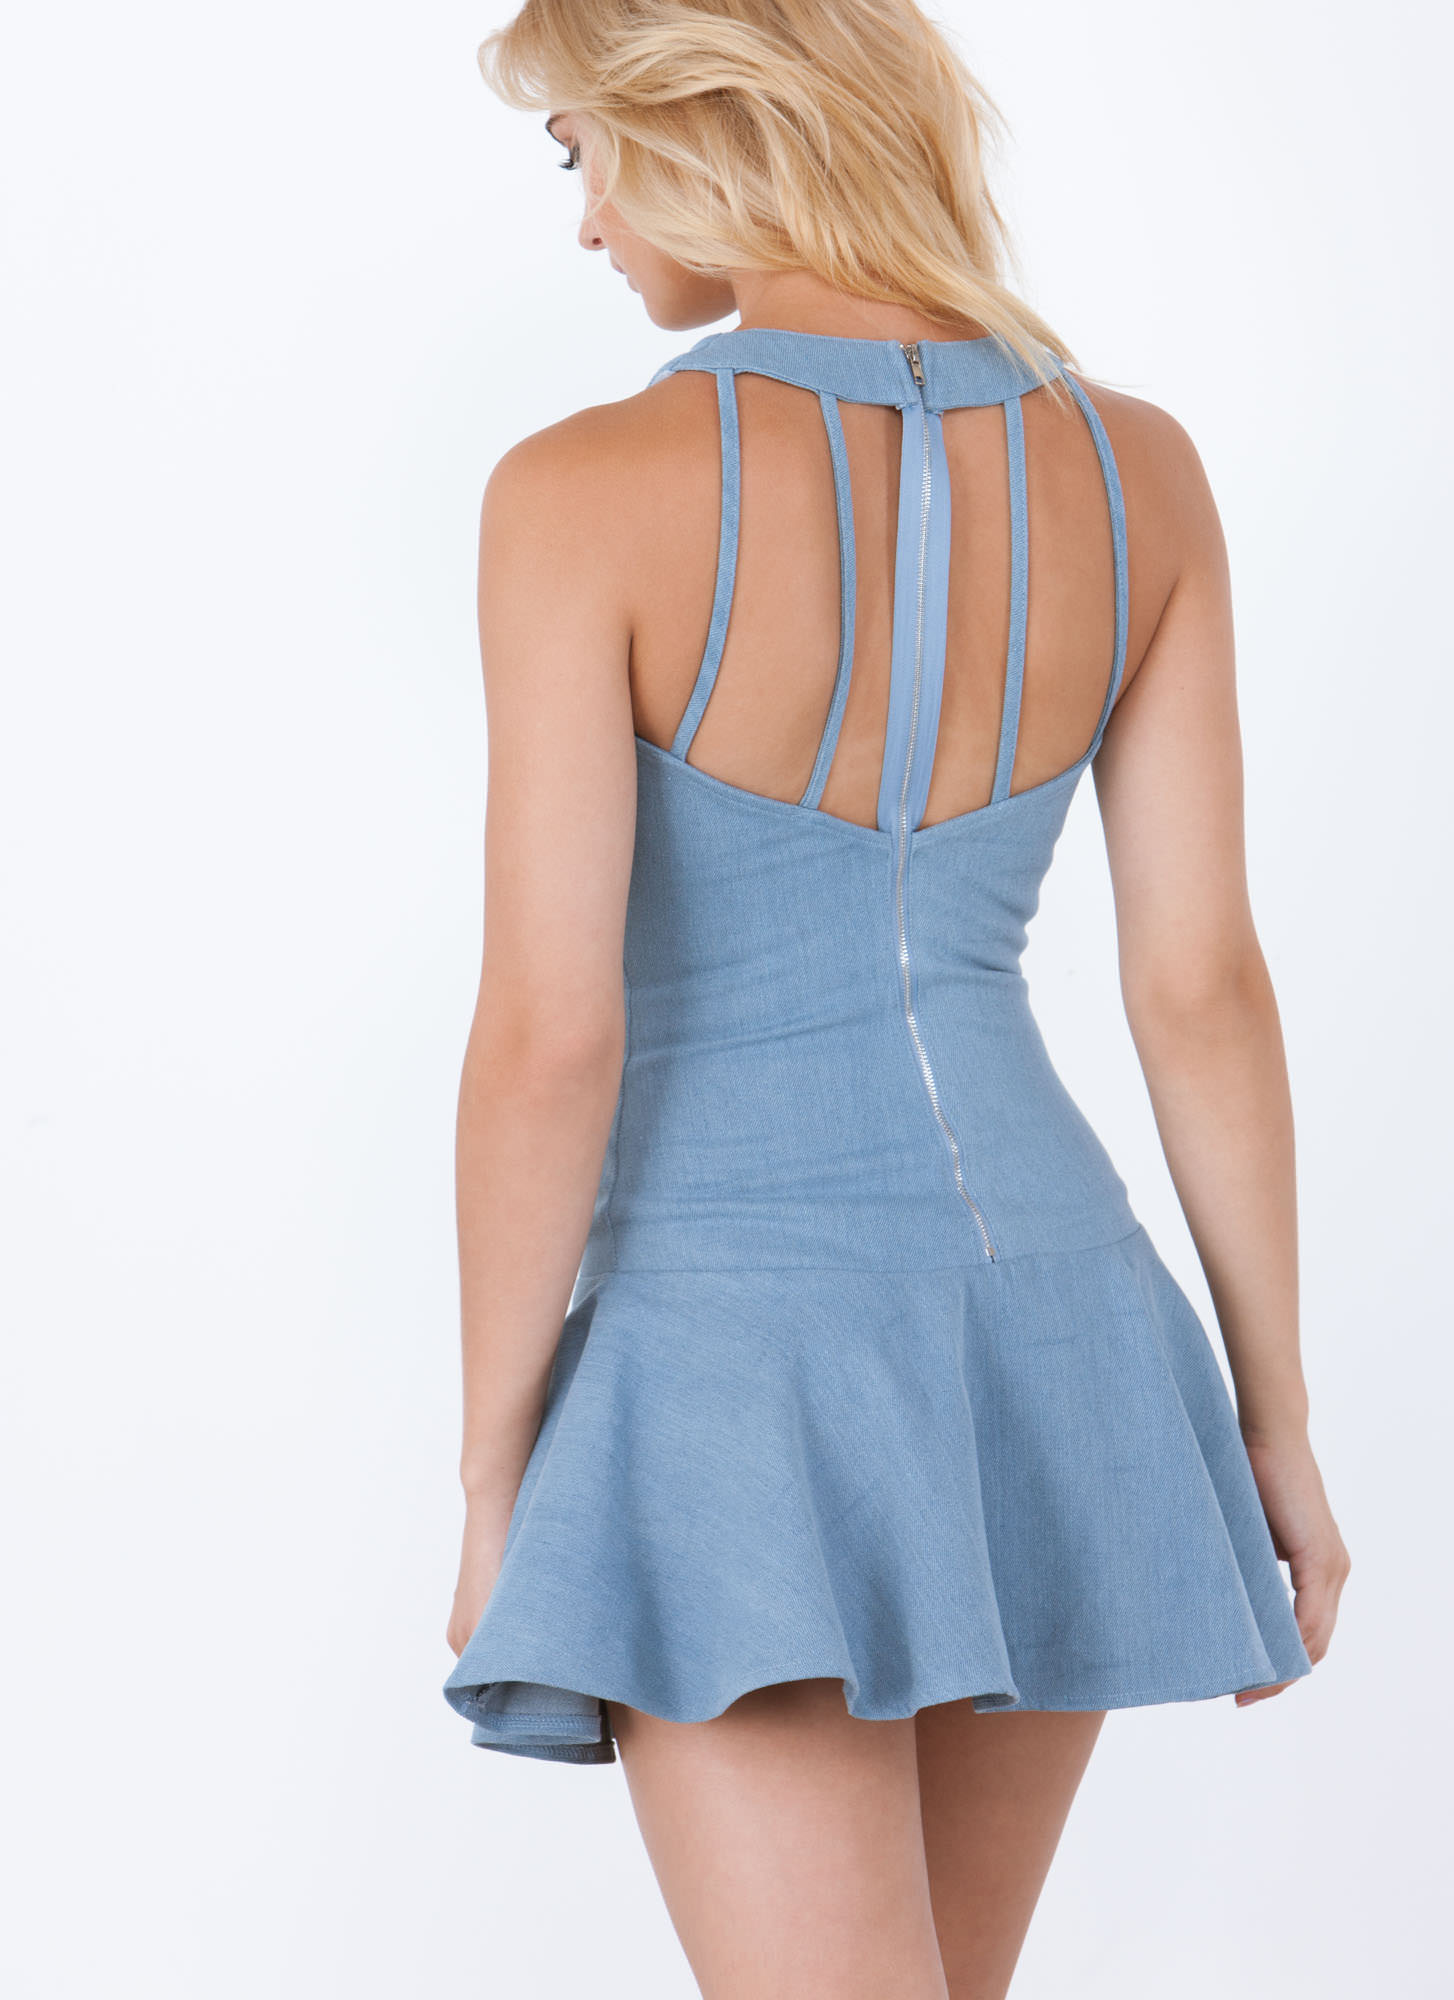 Pep-Lum In Ur Step Chambray Dress BLUE